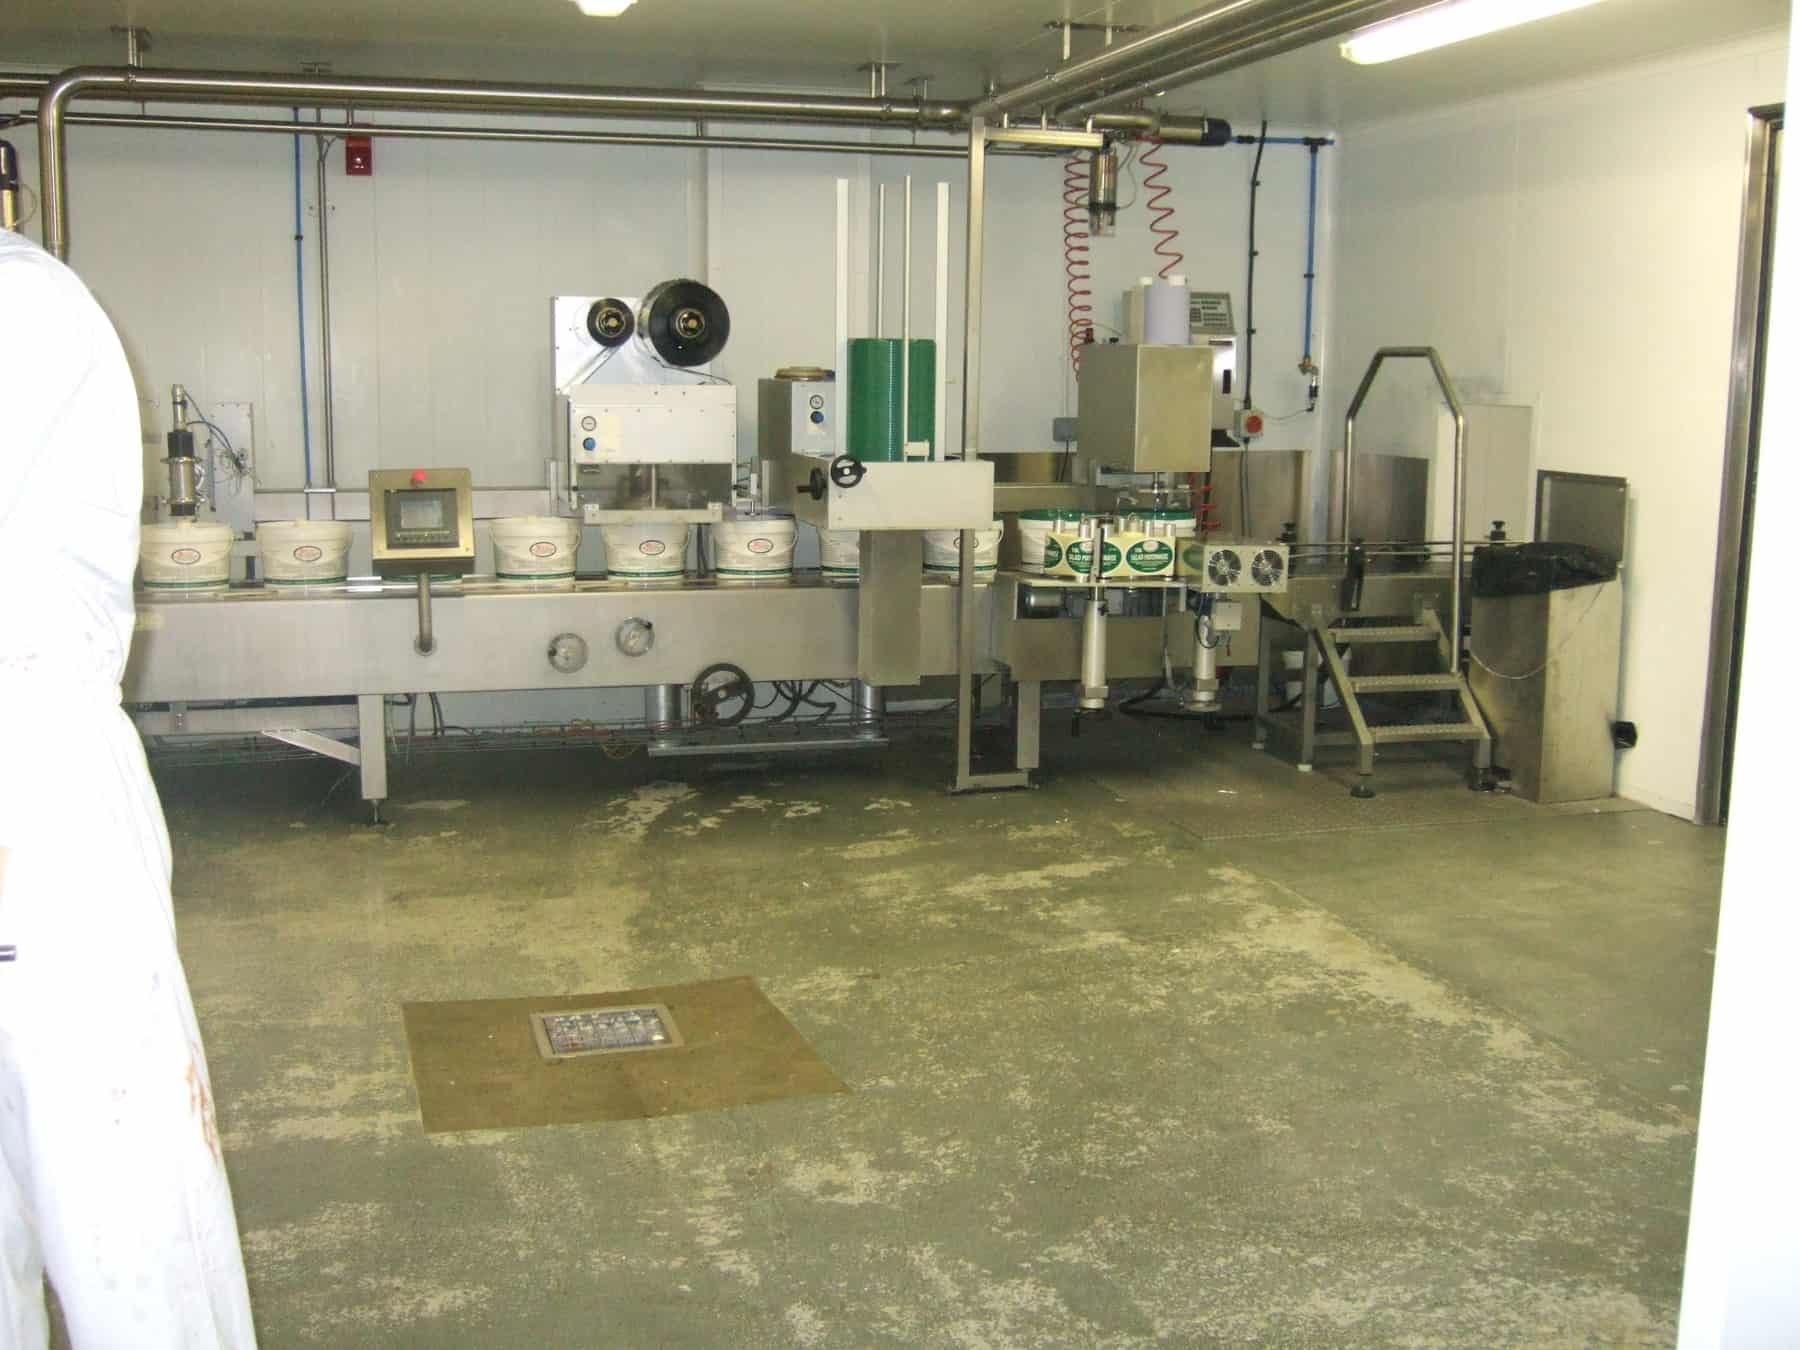 food factory room with unpainted flooring and machinery